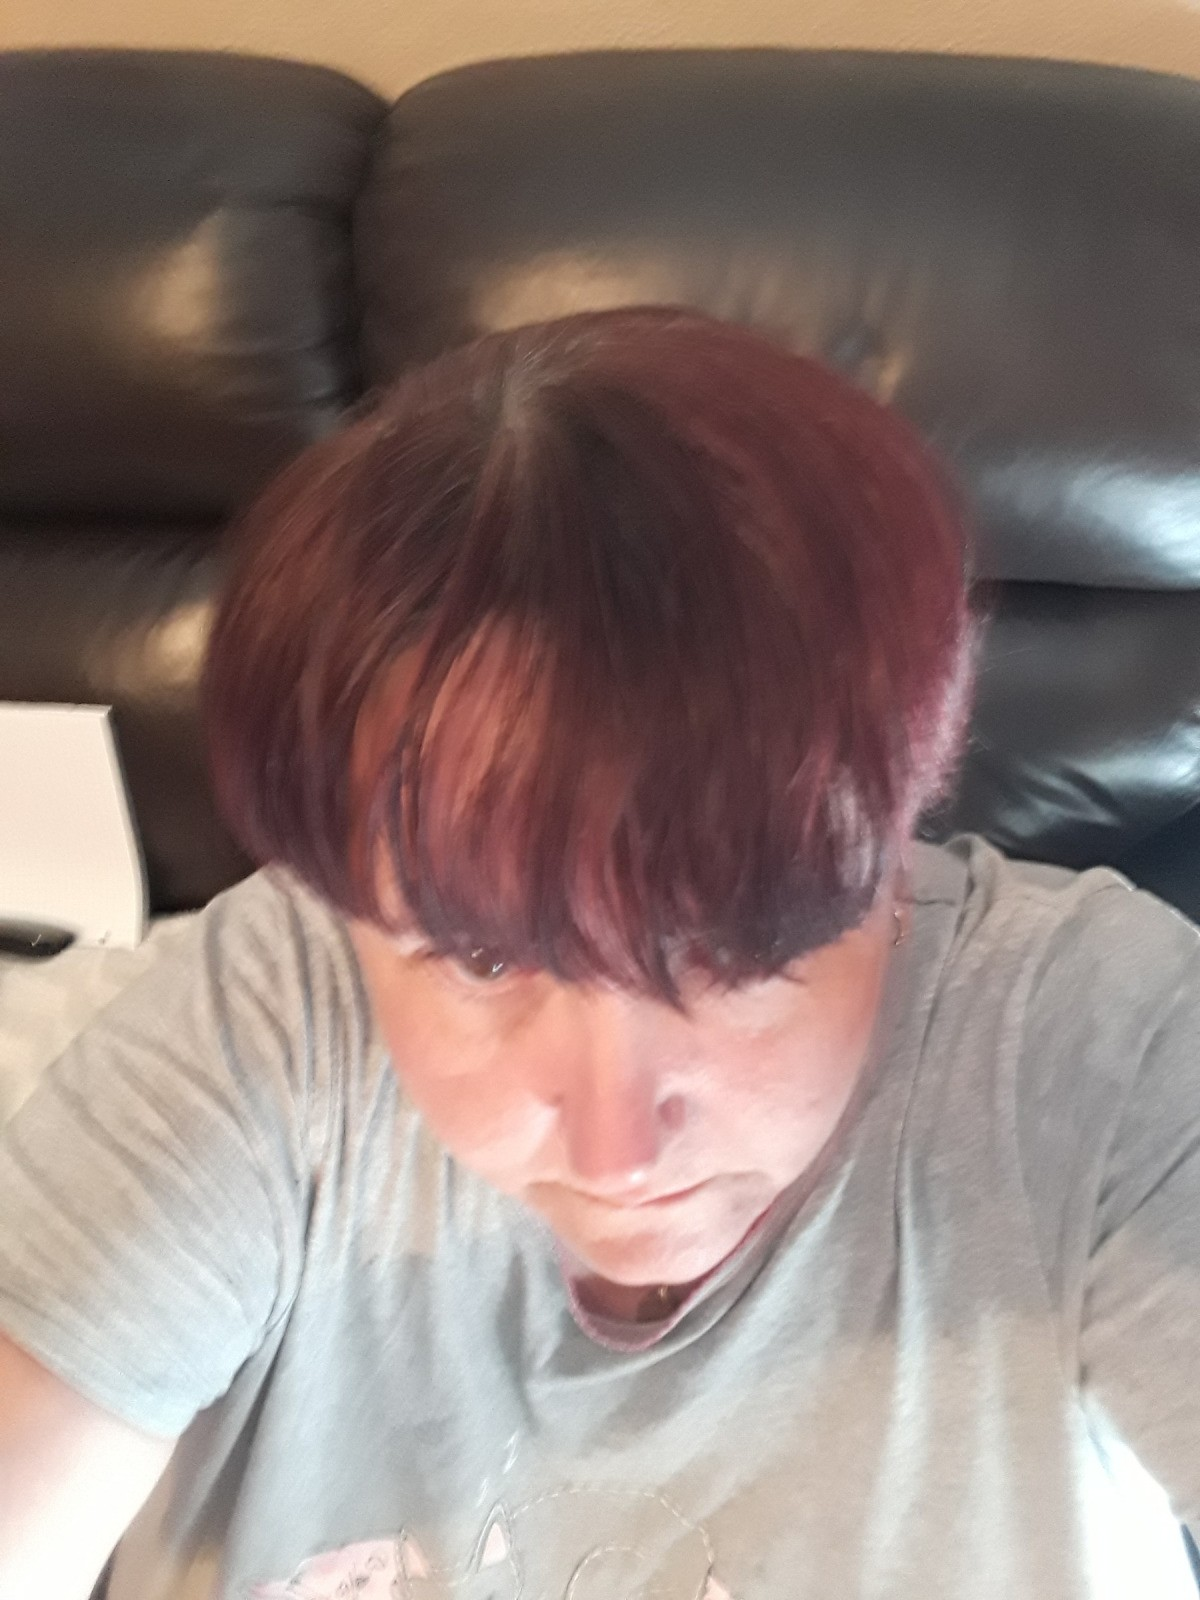 Two Color Hair Dyeing: Re-Dyeing Hair After Removing Color